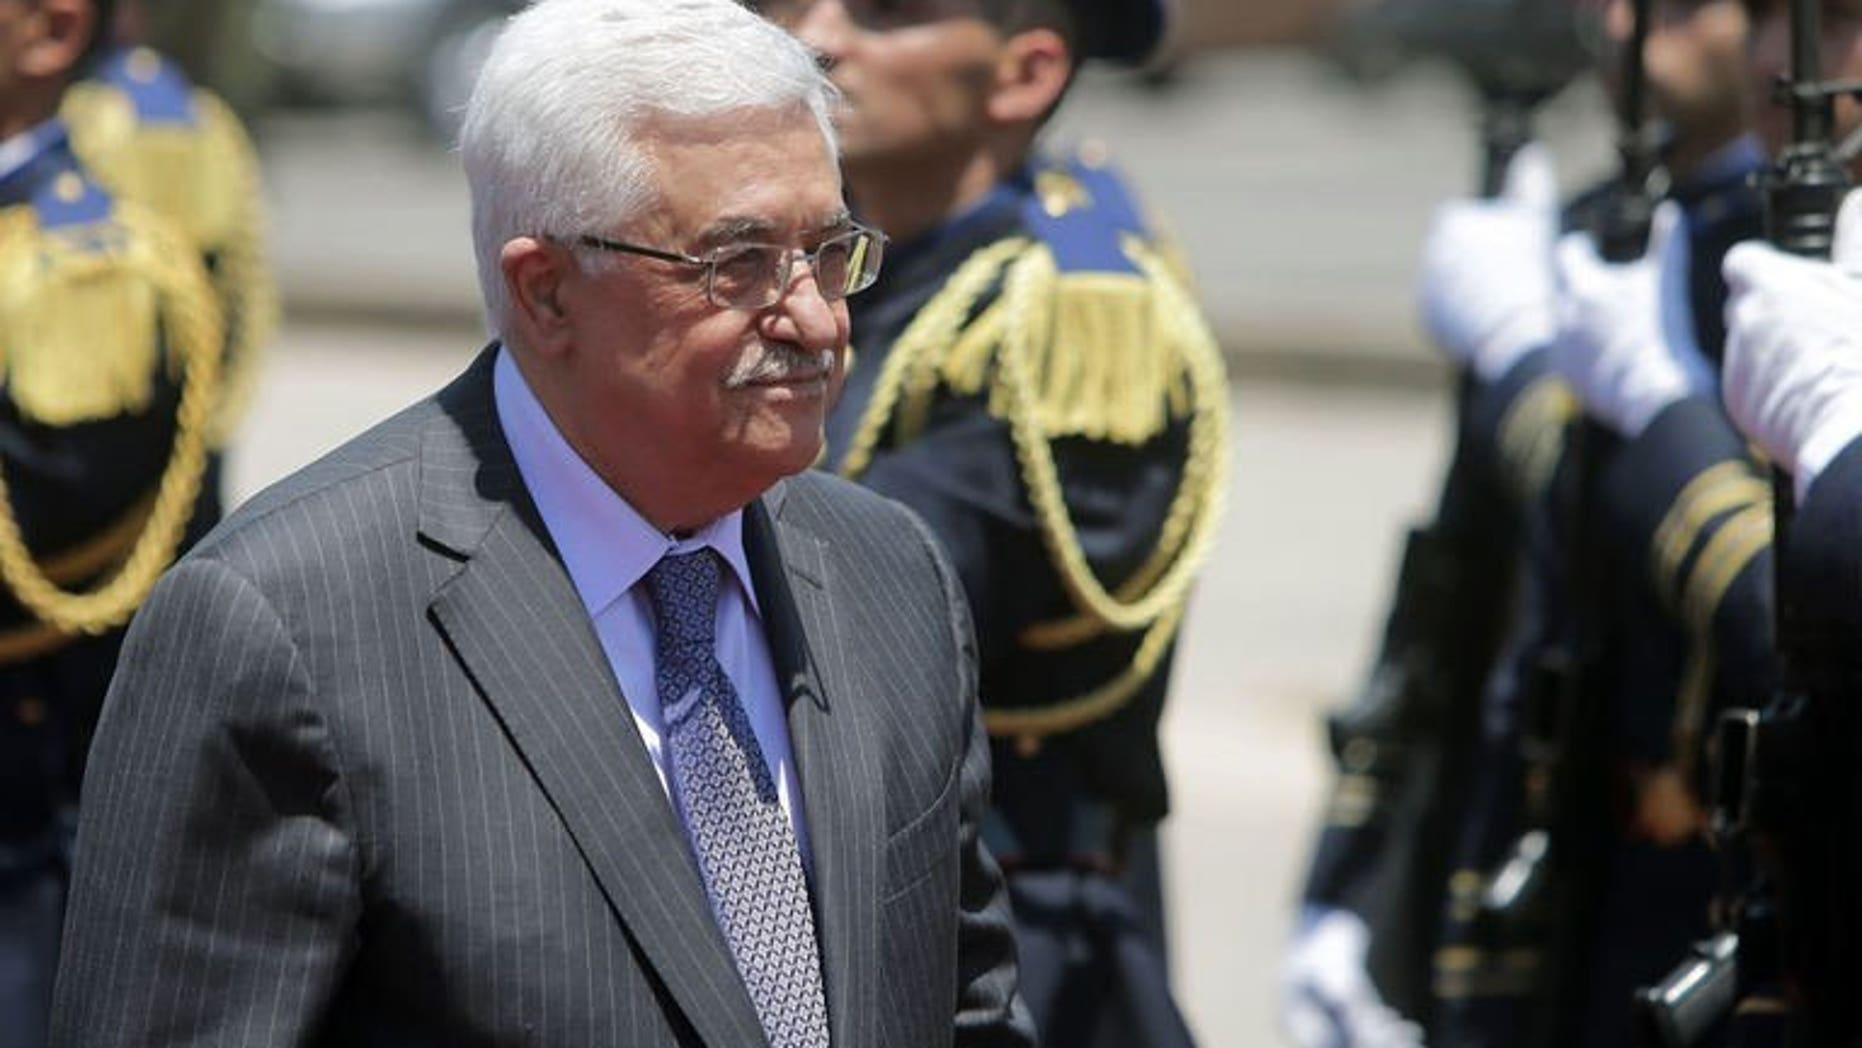 Palestinian president Mahmud Abbas reviews the guard of honour as he arrives in Beirut, on July 4, 2013. Abbas has congratulated Adly Mansour on his appointment as Egypt's interim president a day after Mohamed Morsi was overthrown by the Egyptian army.